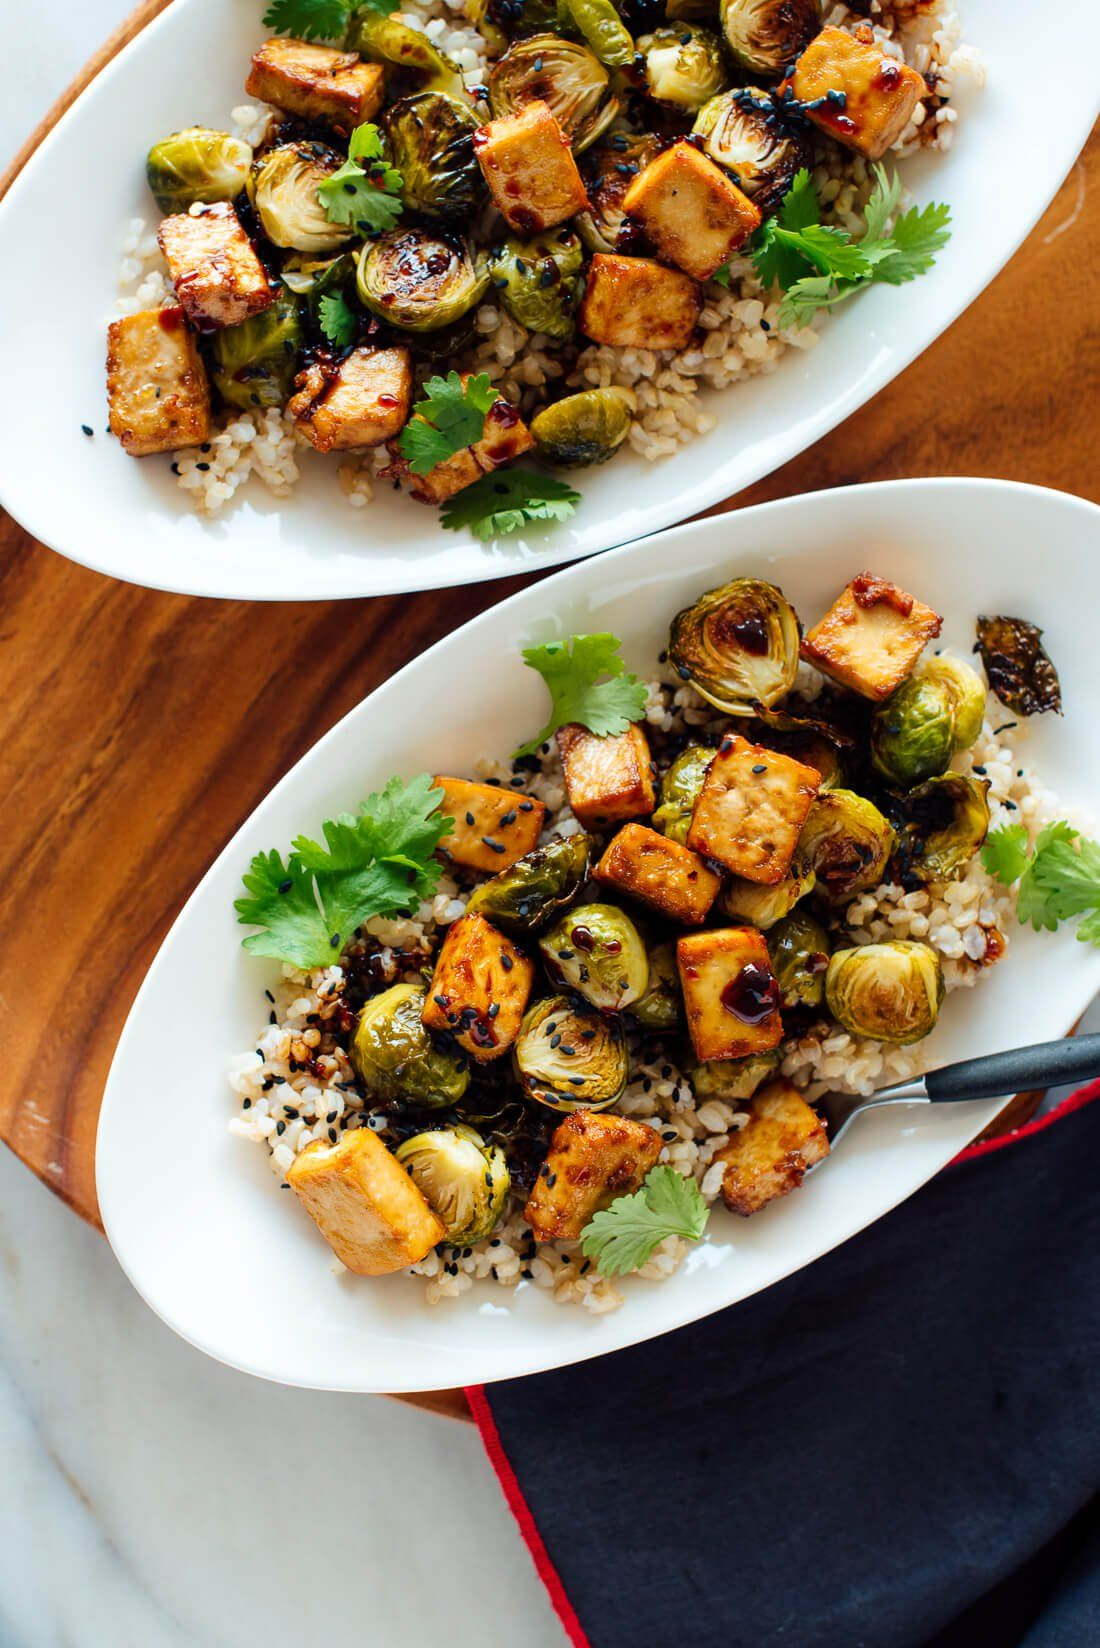 Roasted Brussels Sprouts And Crispy Baked Tofu With Honey Sesame Glaze